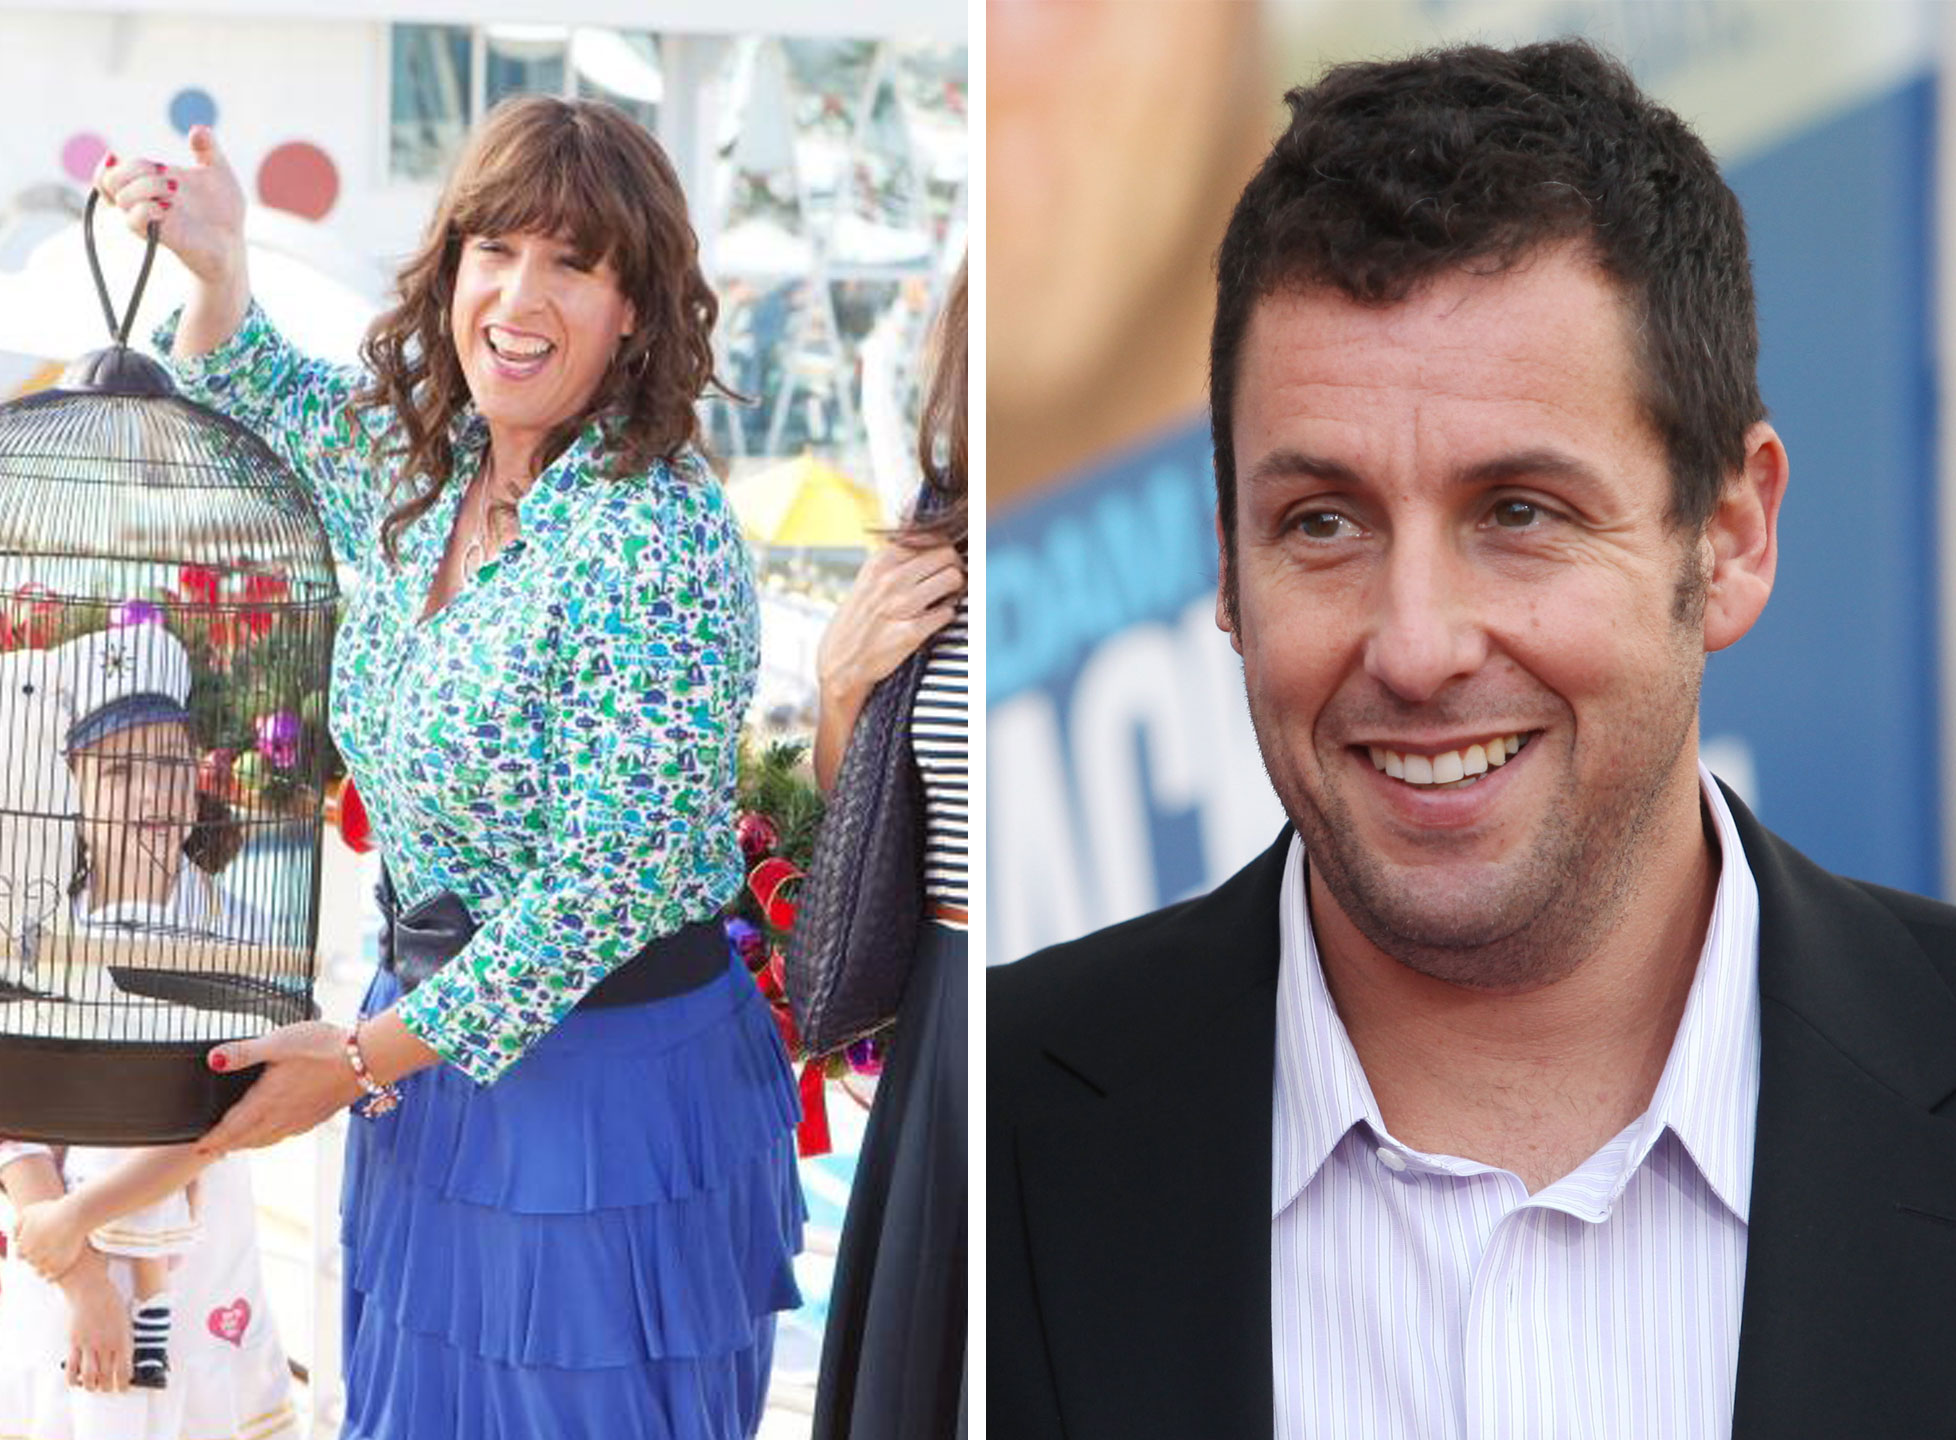 Adam Sandler as Jill Sadelstein in Jack and Jill